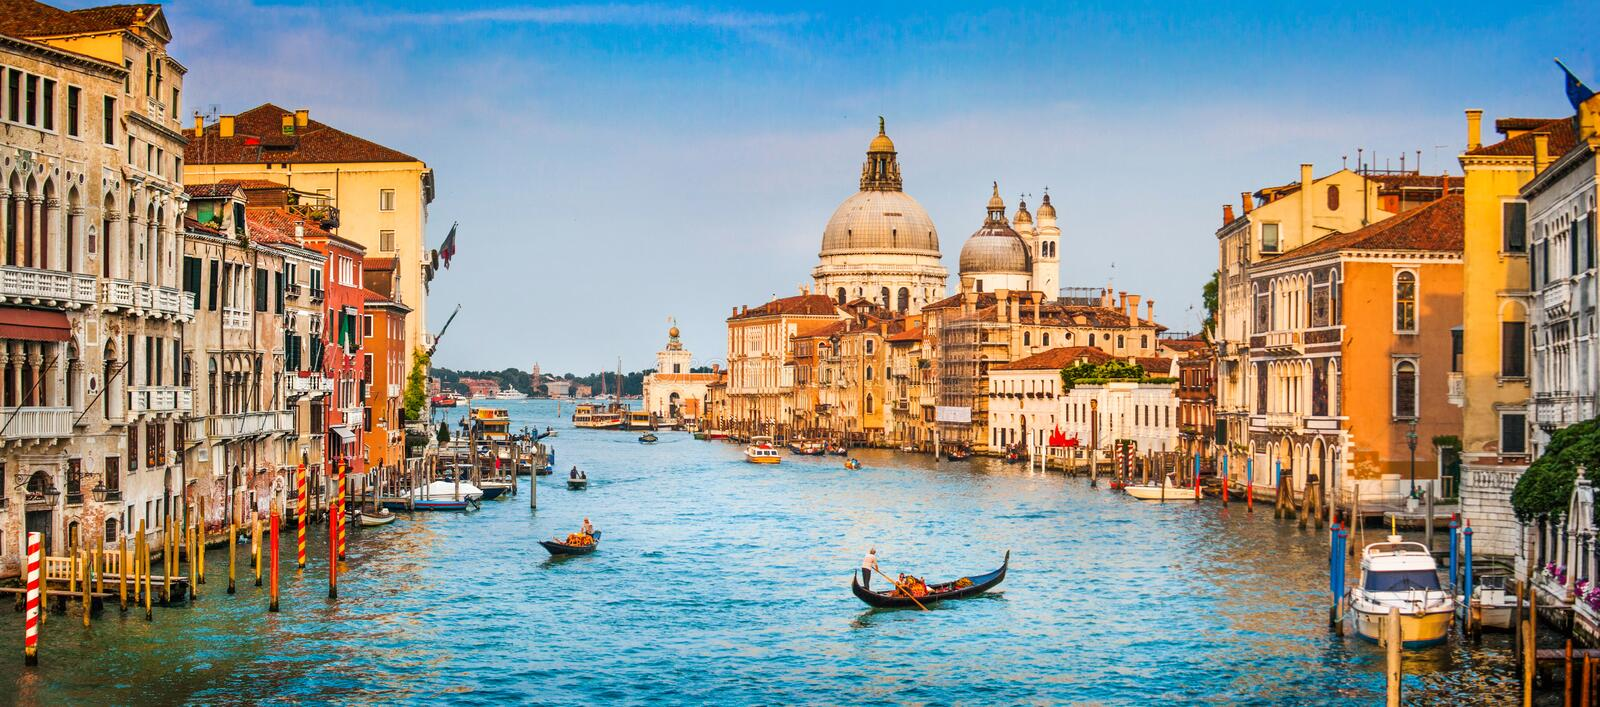 Canal Grande panorama at sunset, Venice, Italy stock photo